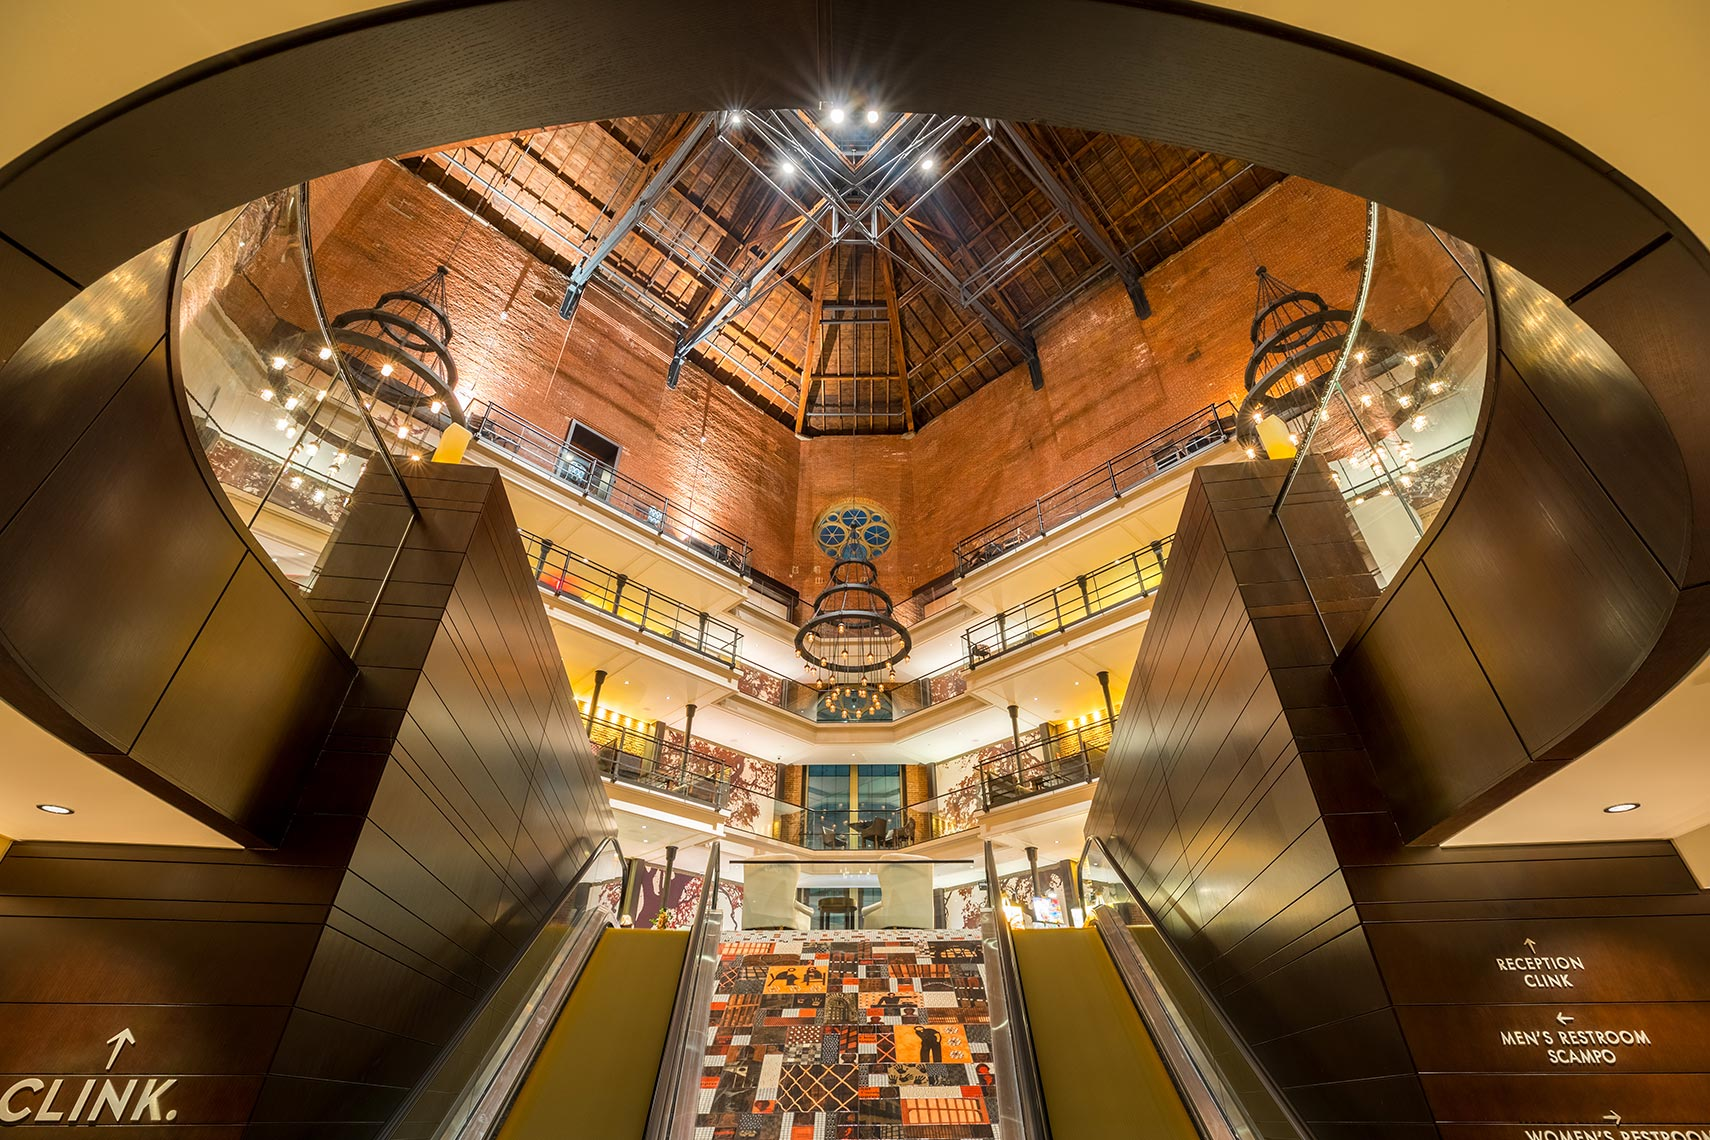 Clink Hotel Lobby in Boston by Texas Architectural Photographer Shannon O